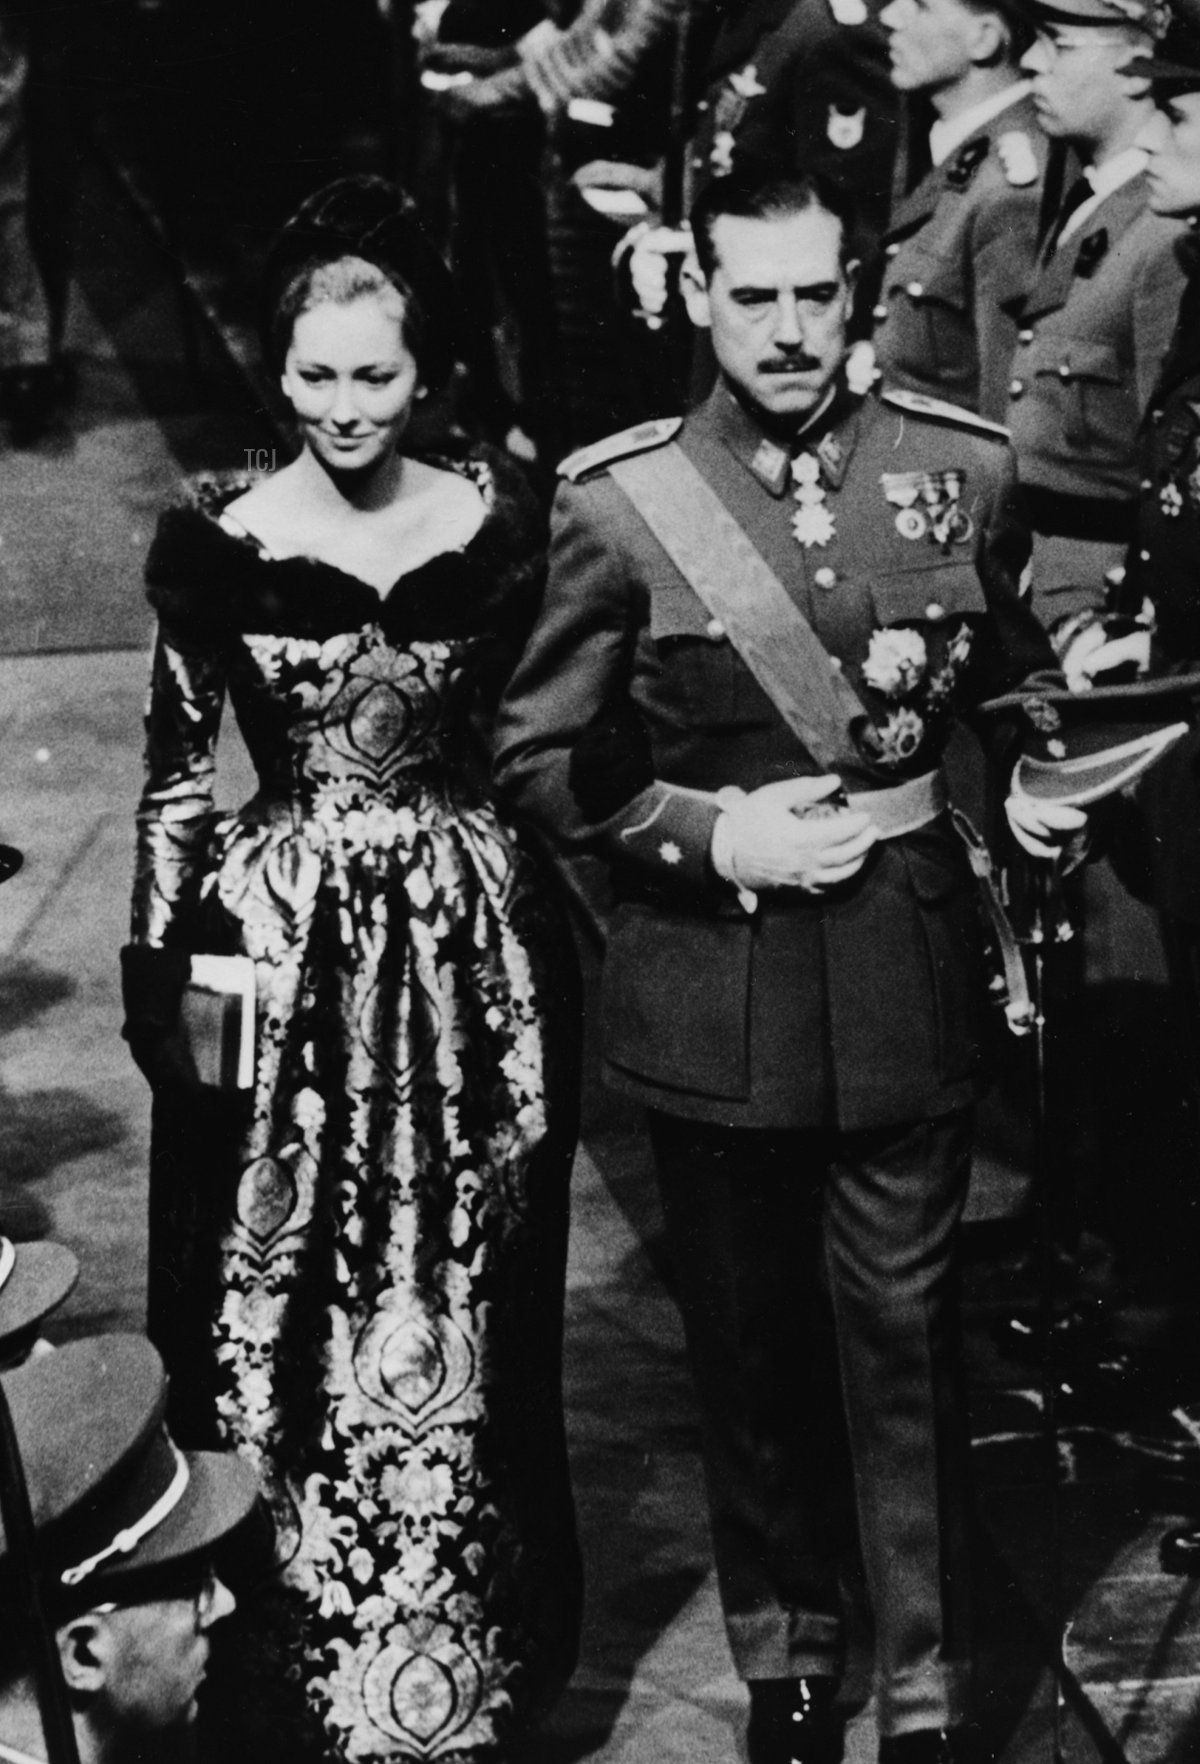 Princess Paola of Belgium and the Marquis Of Aguilar leaving the Collegiate Church of St Michel and Gudule arm in arm, following the wedding of King Baudouin of Belgium, Brussels, December 16th 1960